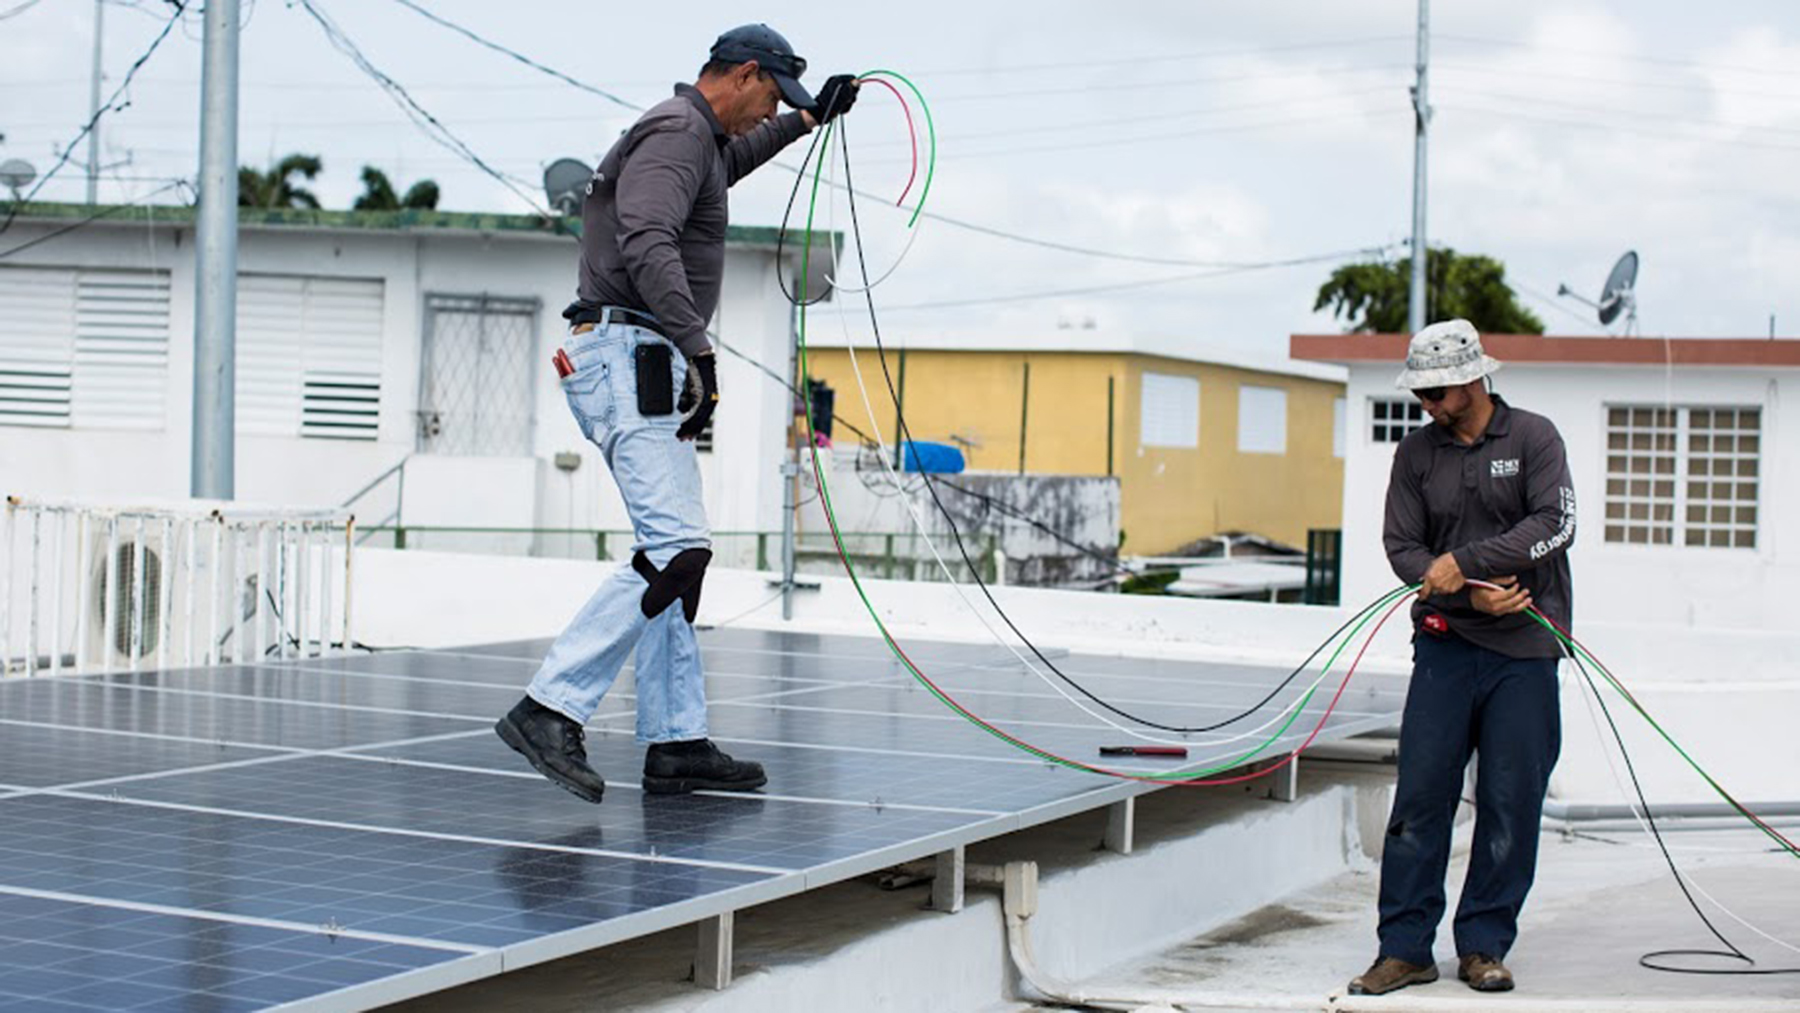 From left, brothers Luis Montalvo and Jared Montalvo install a solar power system at Clínica Iella in San Juan, P.R., on July 5, 2018. Solar power can keep a clinic operational during a disaster and protect vital medicines. (Erika P. Rodriguez/Direct Relief)